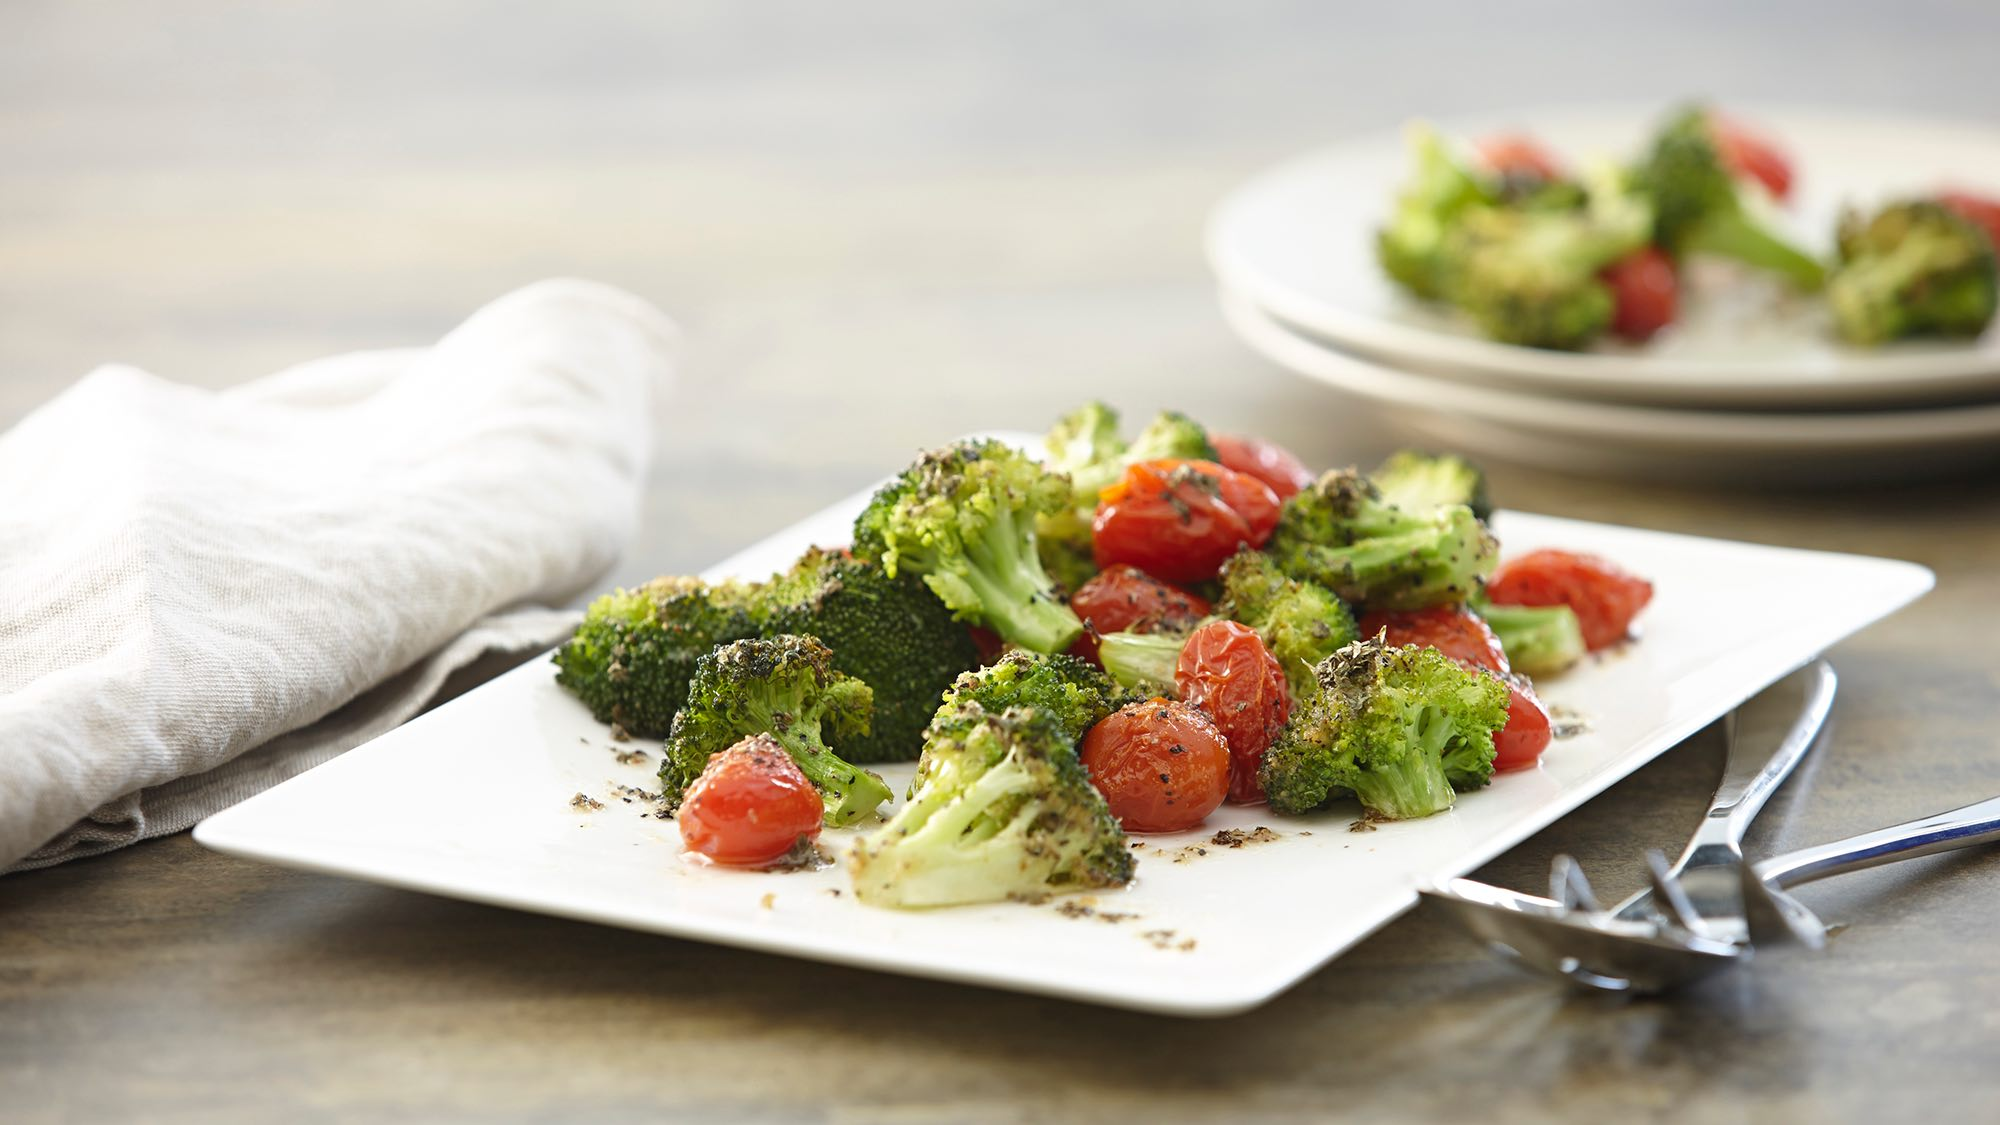 McCormick Roasted Broccoli and Tomatoes